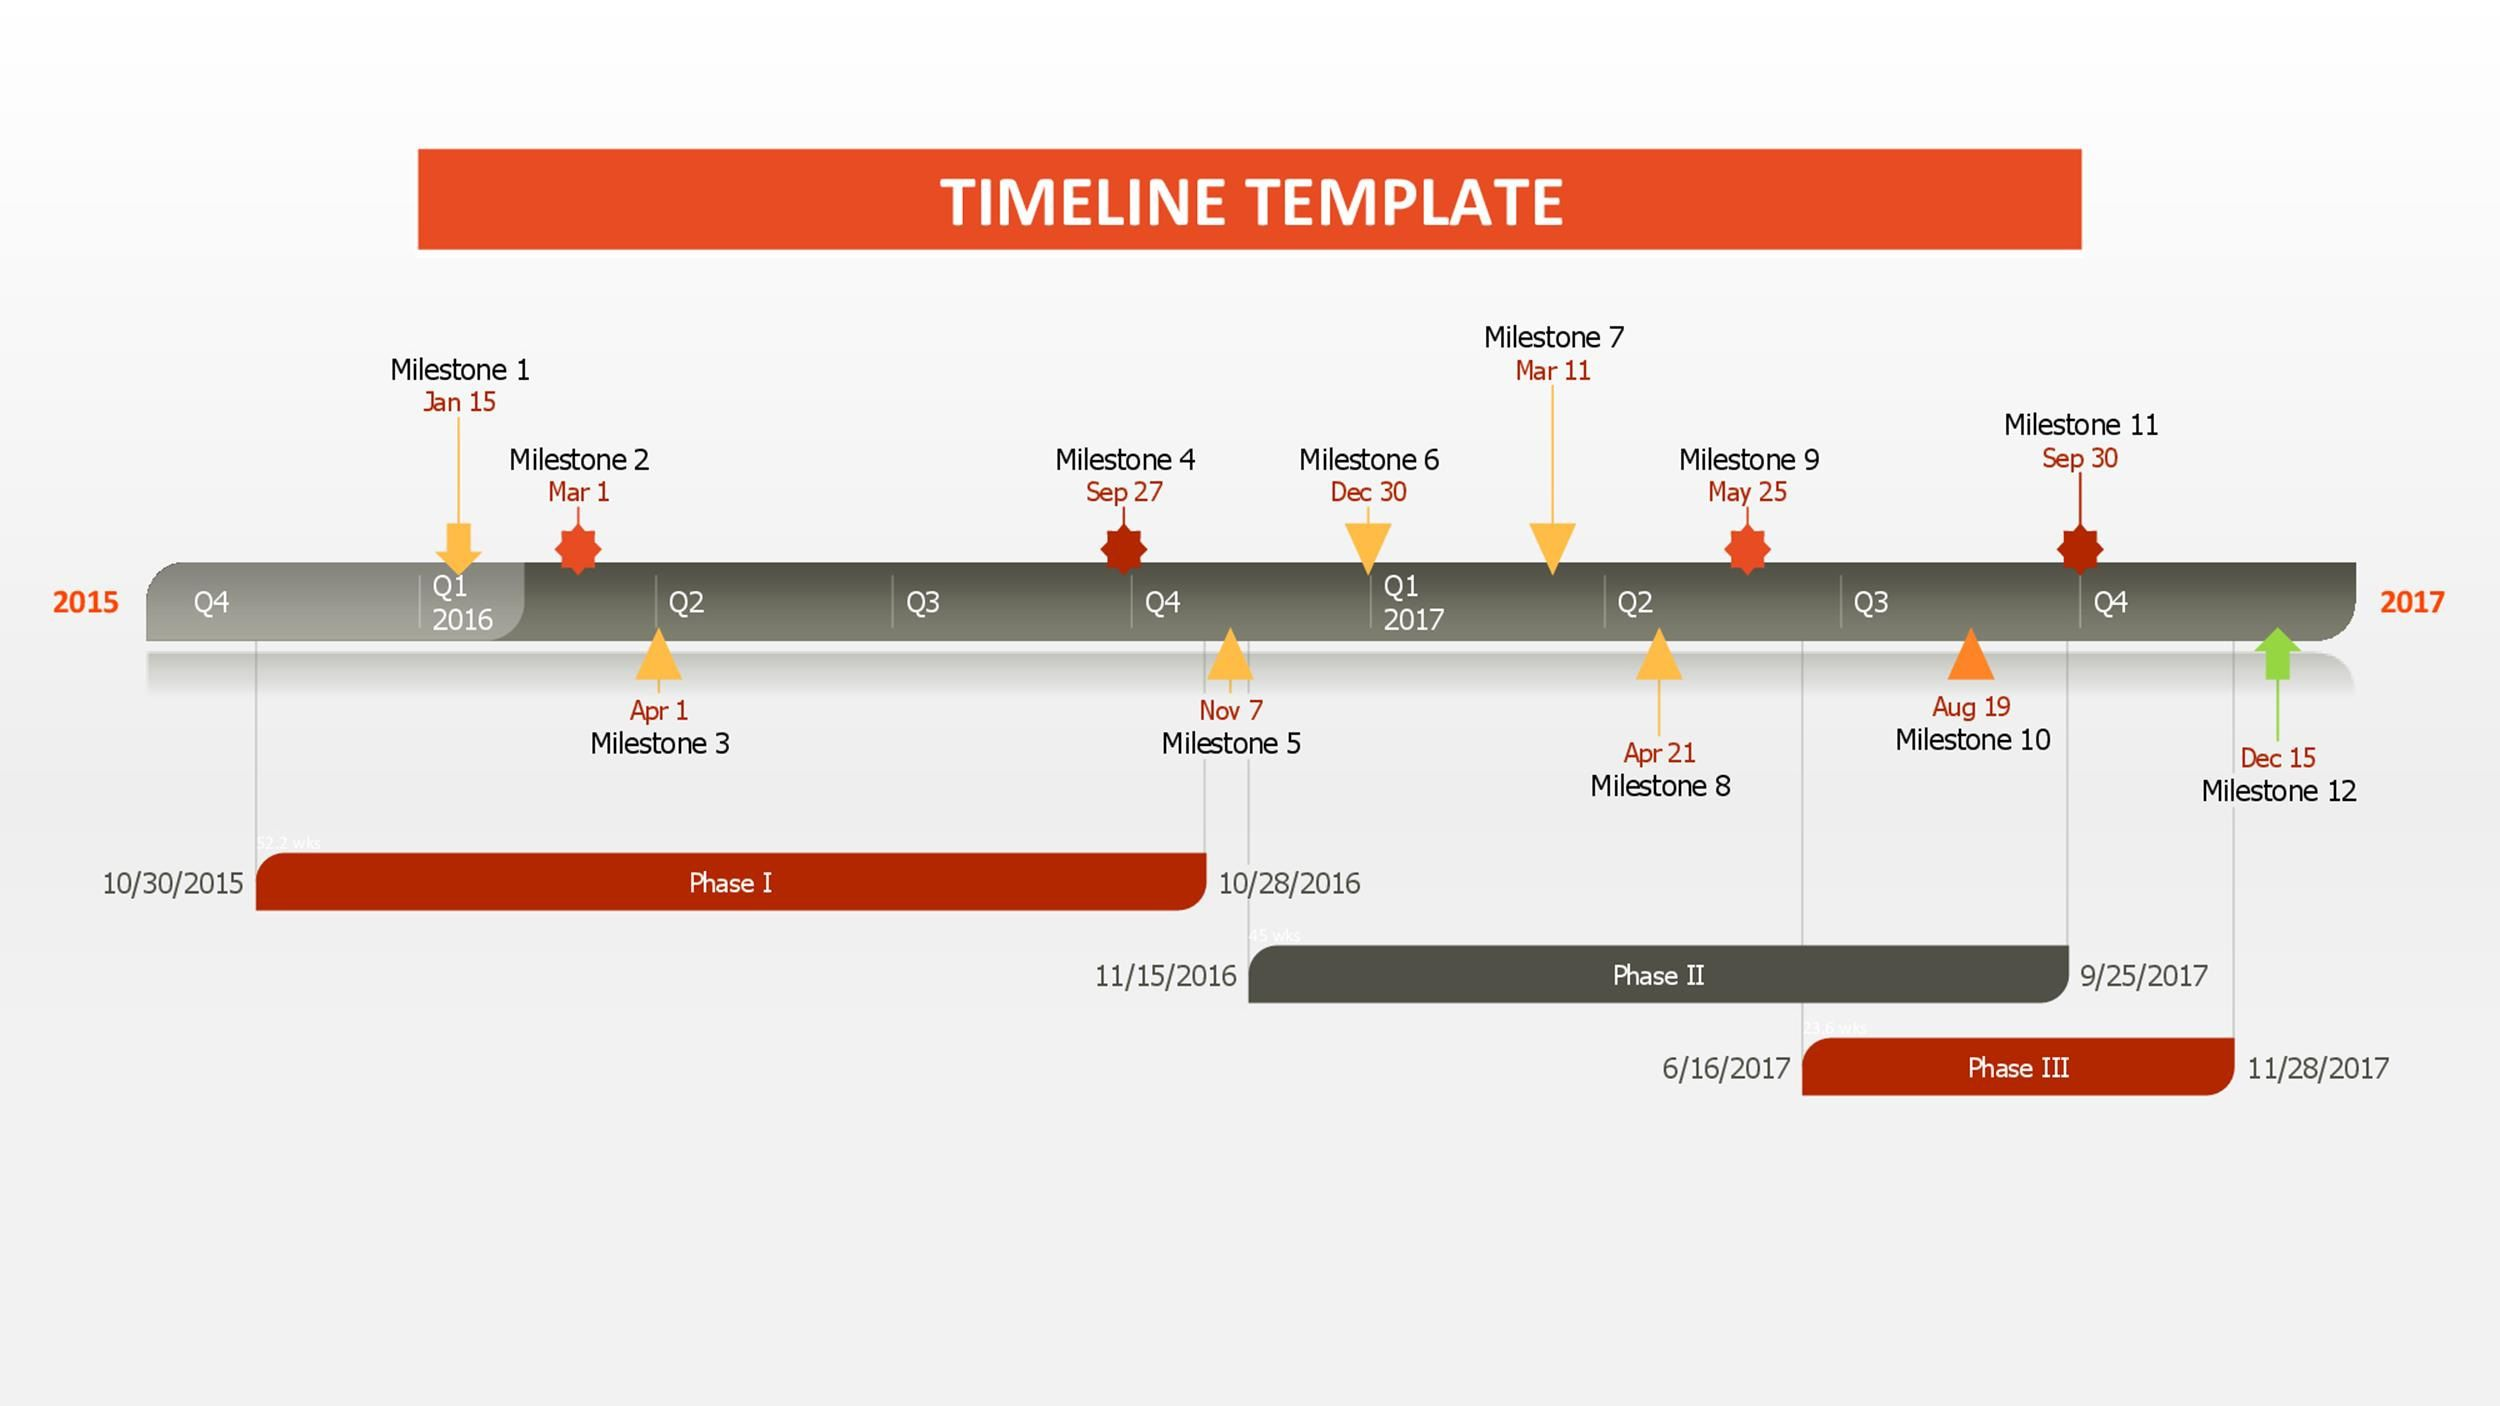 003 Amazing Timeline Template For Word 2016 Photo Full